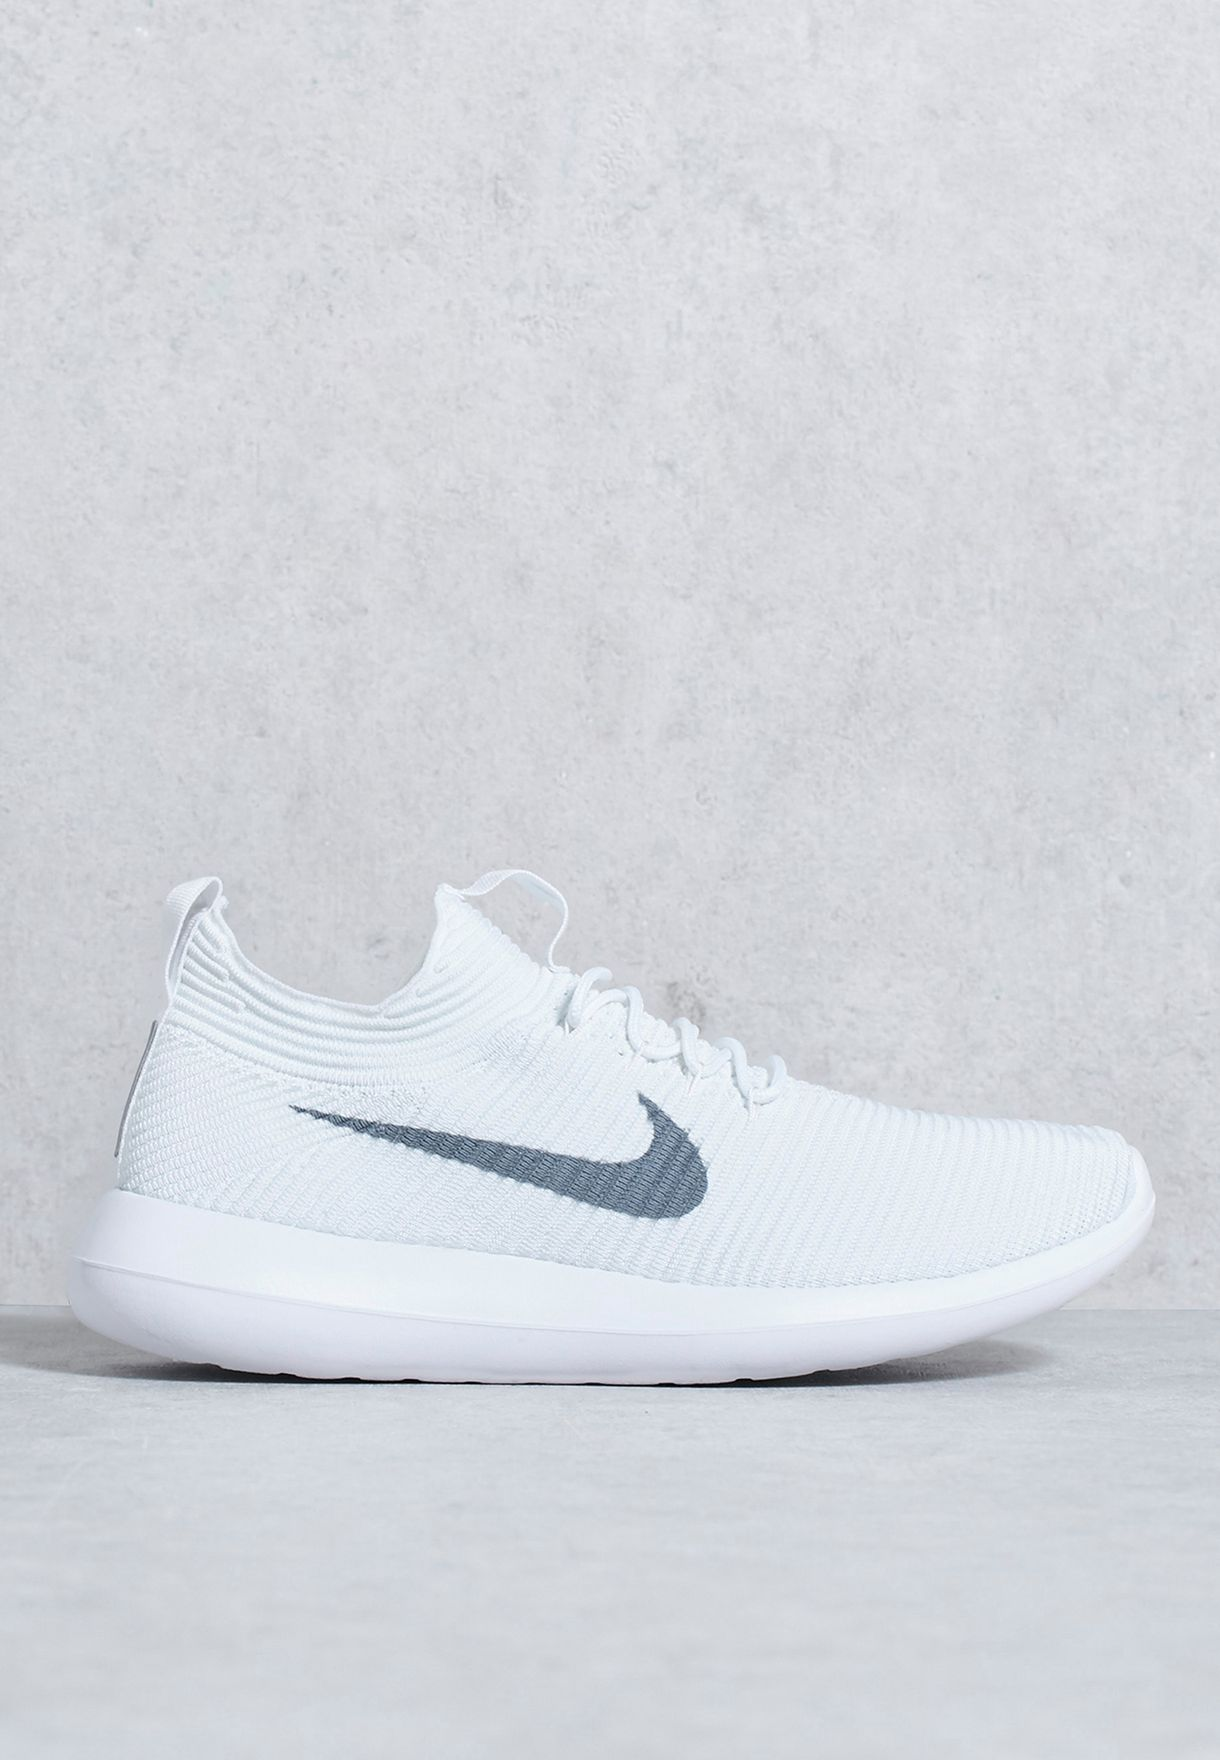 8191c0e1d6a94 Shop Nike white Roshe Two Flyknit V2 918263-100 for Men in UAE ...